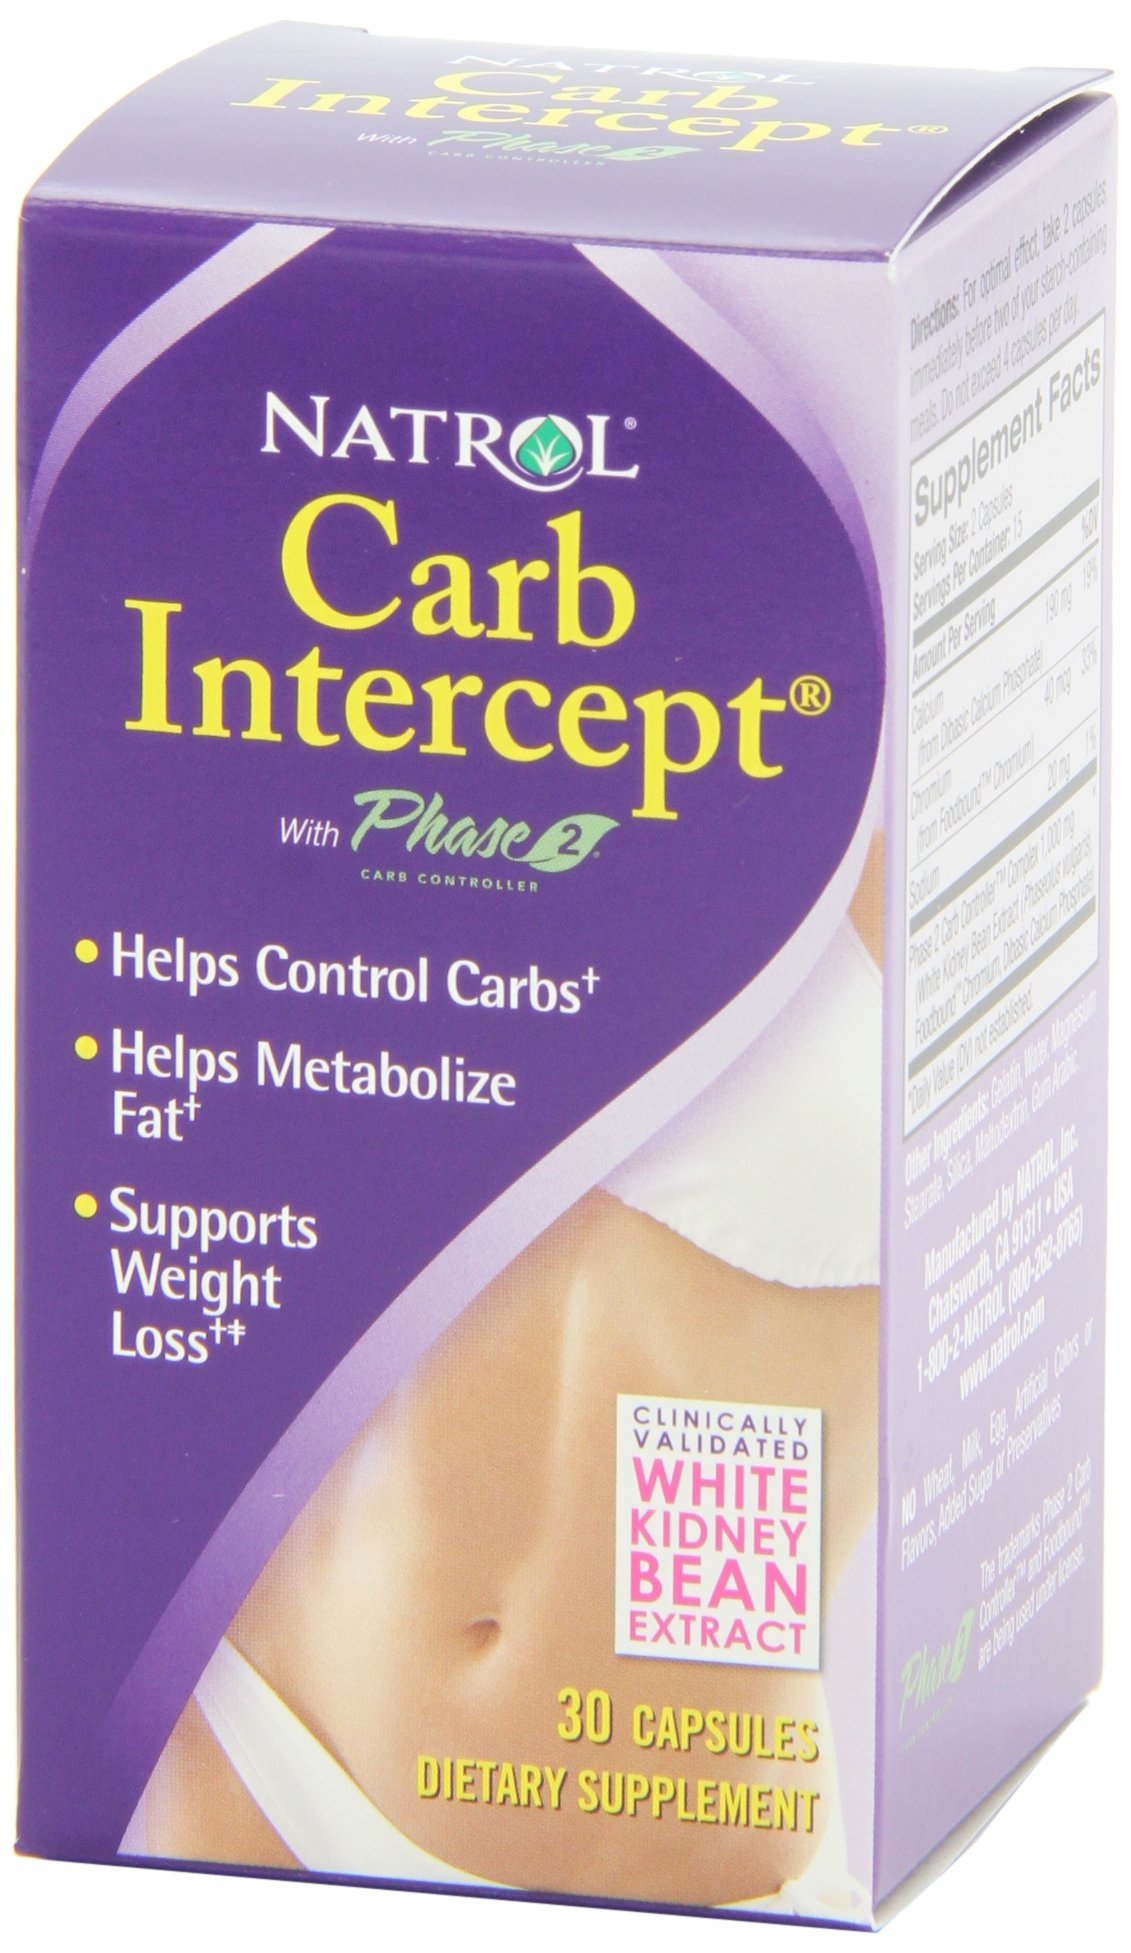 Natrol Carb Intercept with Phase 2 Starch Neutralizer, 30 Capsules (Pack of 3) by Natrol (Image #5)